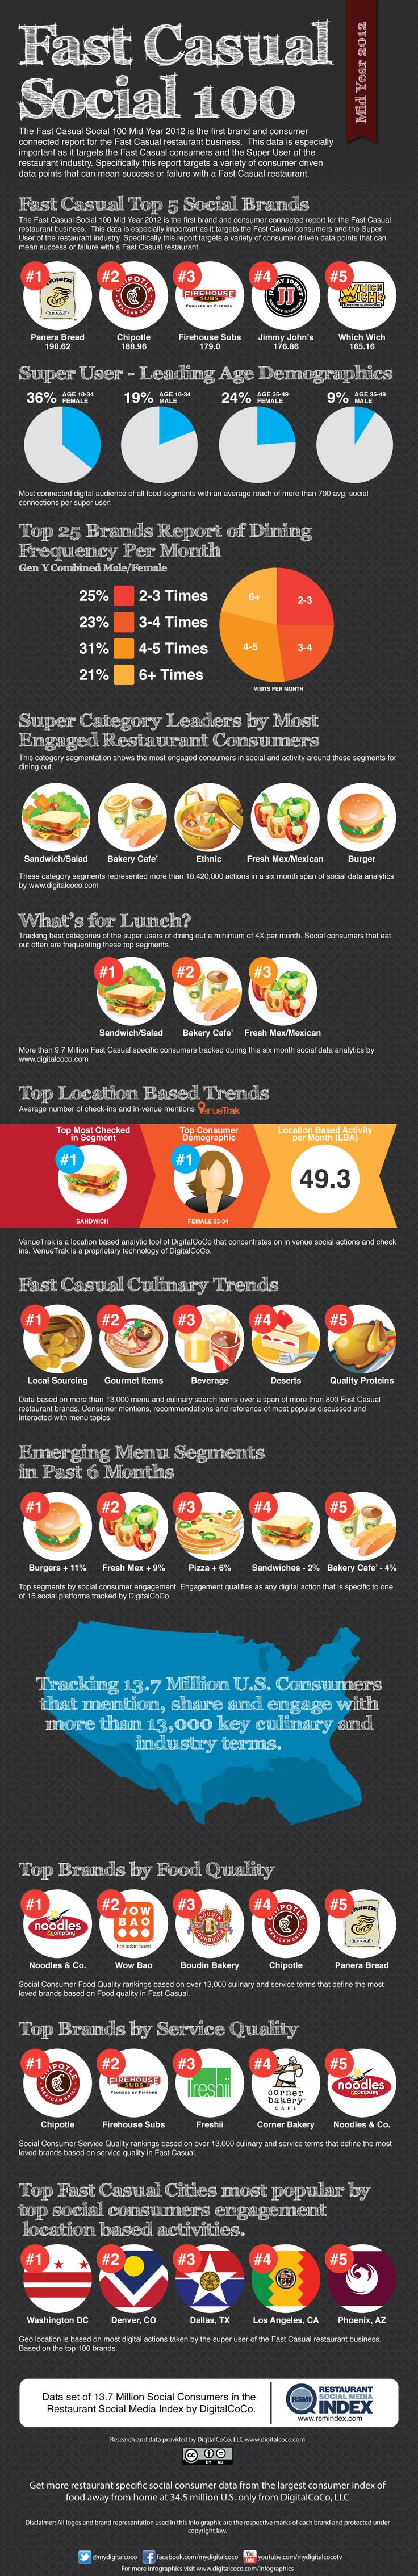 Casual-Restaurant-Industry-Trends